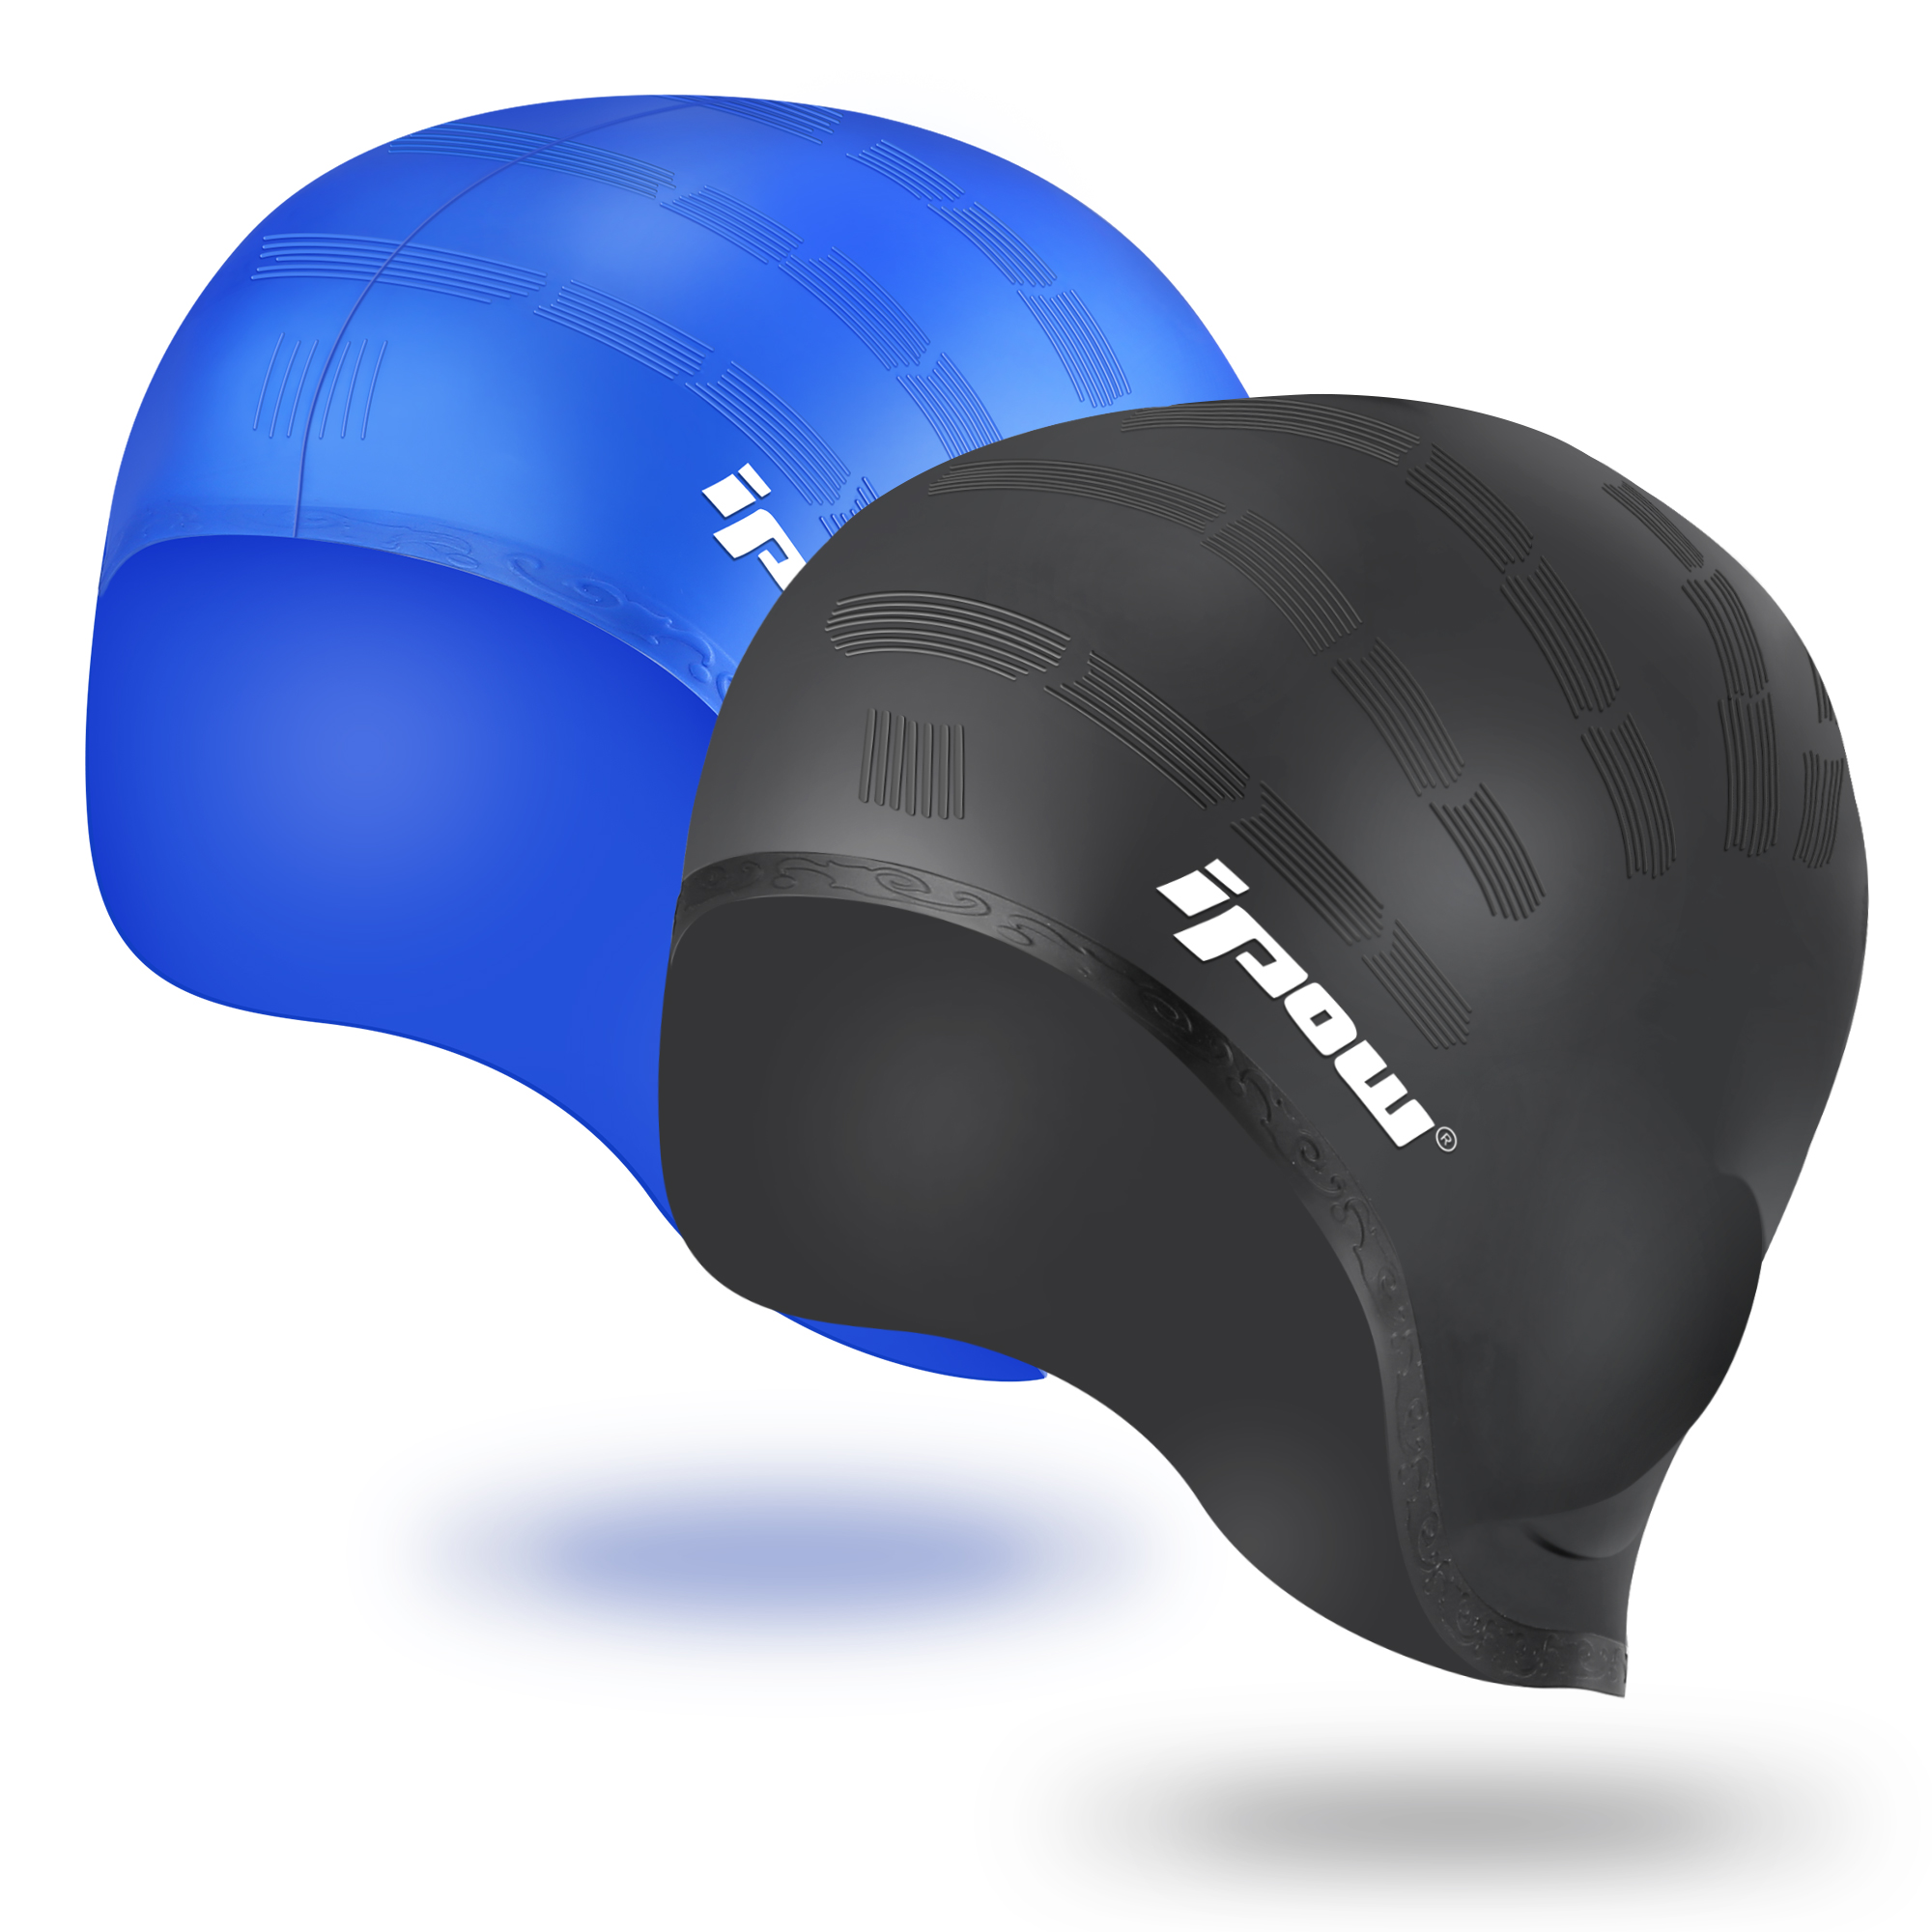 Swimming Cap, IPOW 2-Pack Waterproof Silicone Swim Hat Caps for Adults Men Women Kids Girls Boys Teen, Cover Long/Short Hair Perfectly